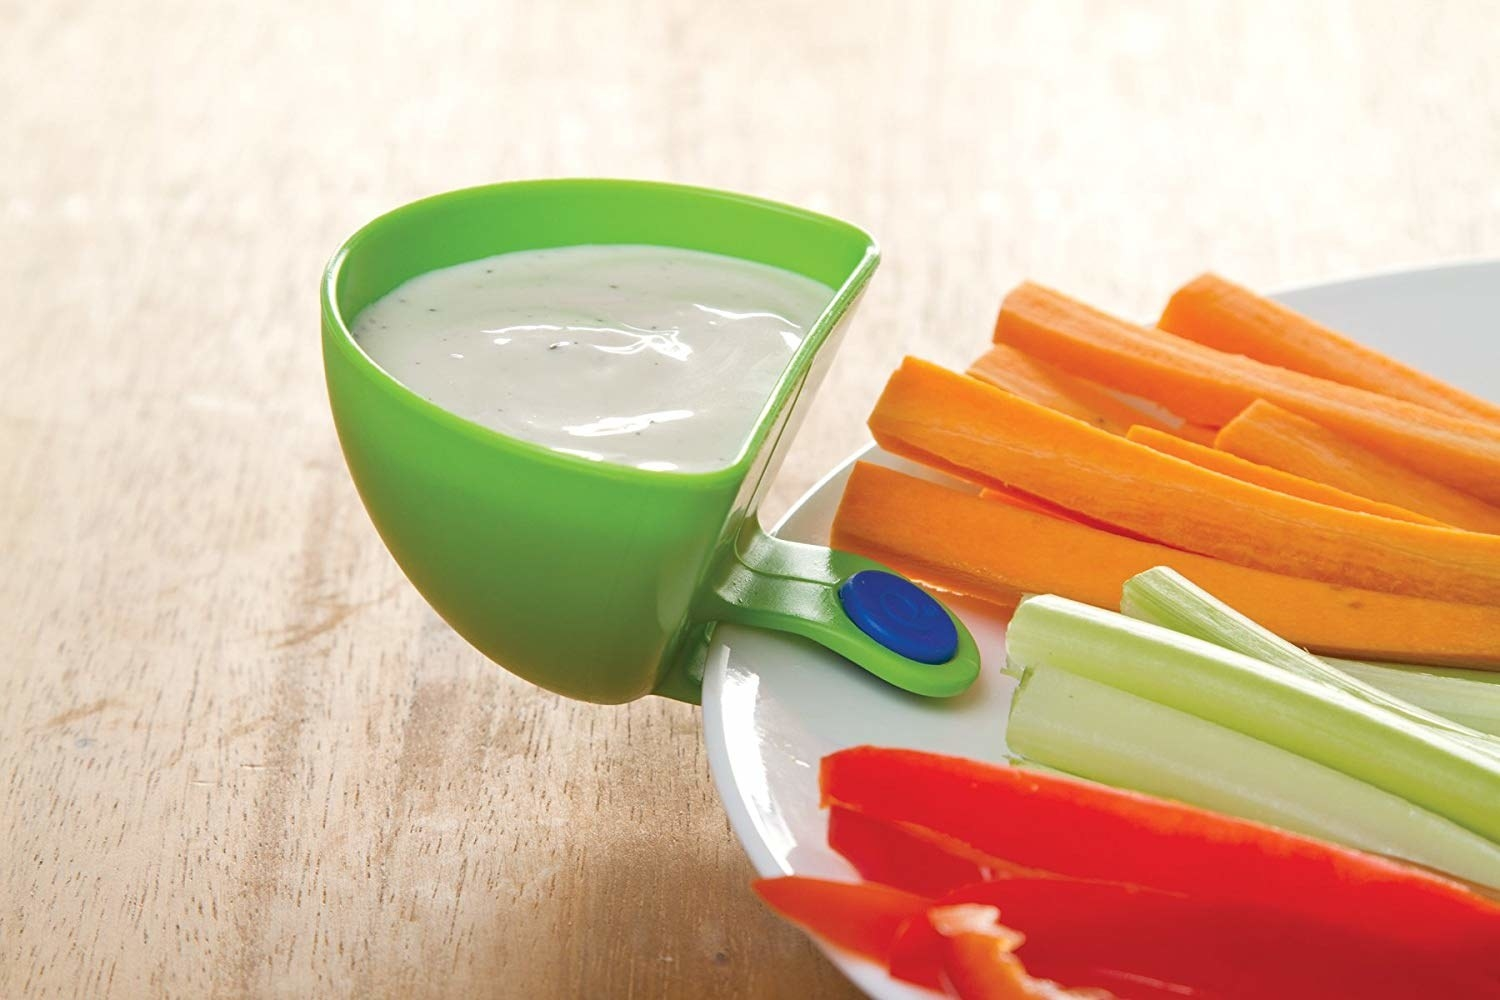 dip clip filled with ranch dressing and securtely attached to a dinner plat that has strips of veggies for snacking